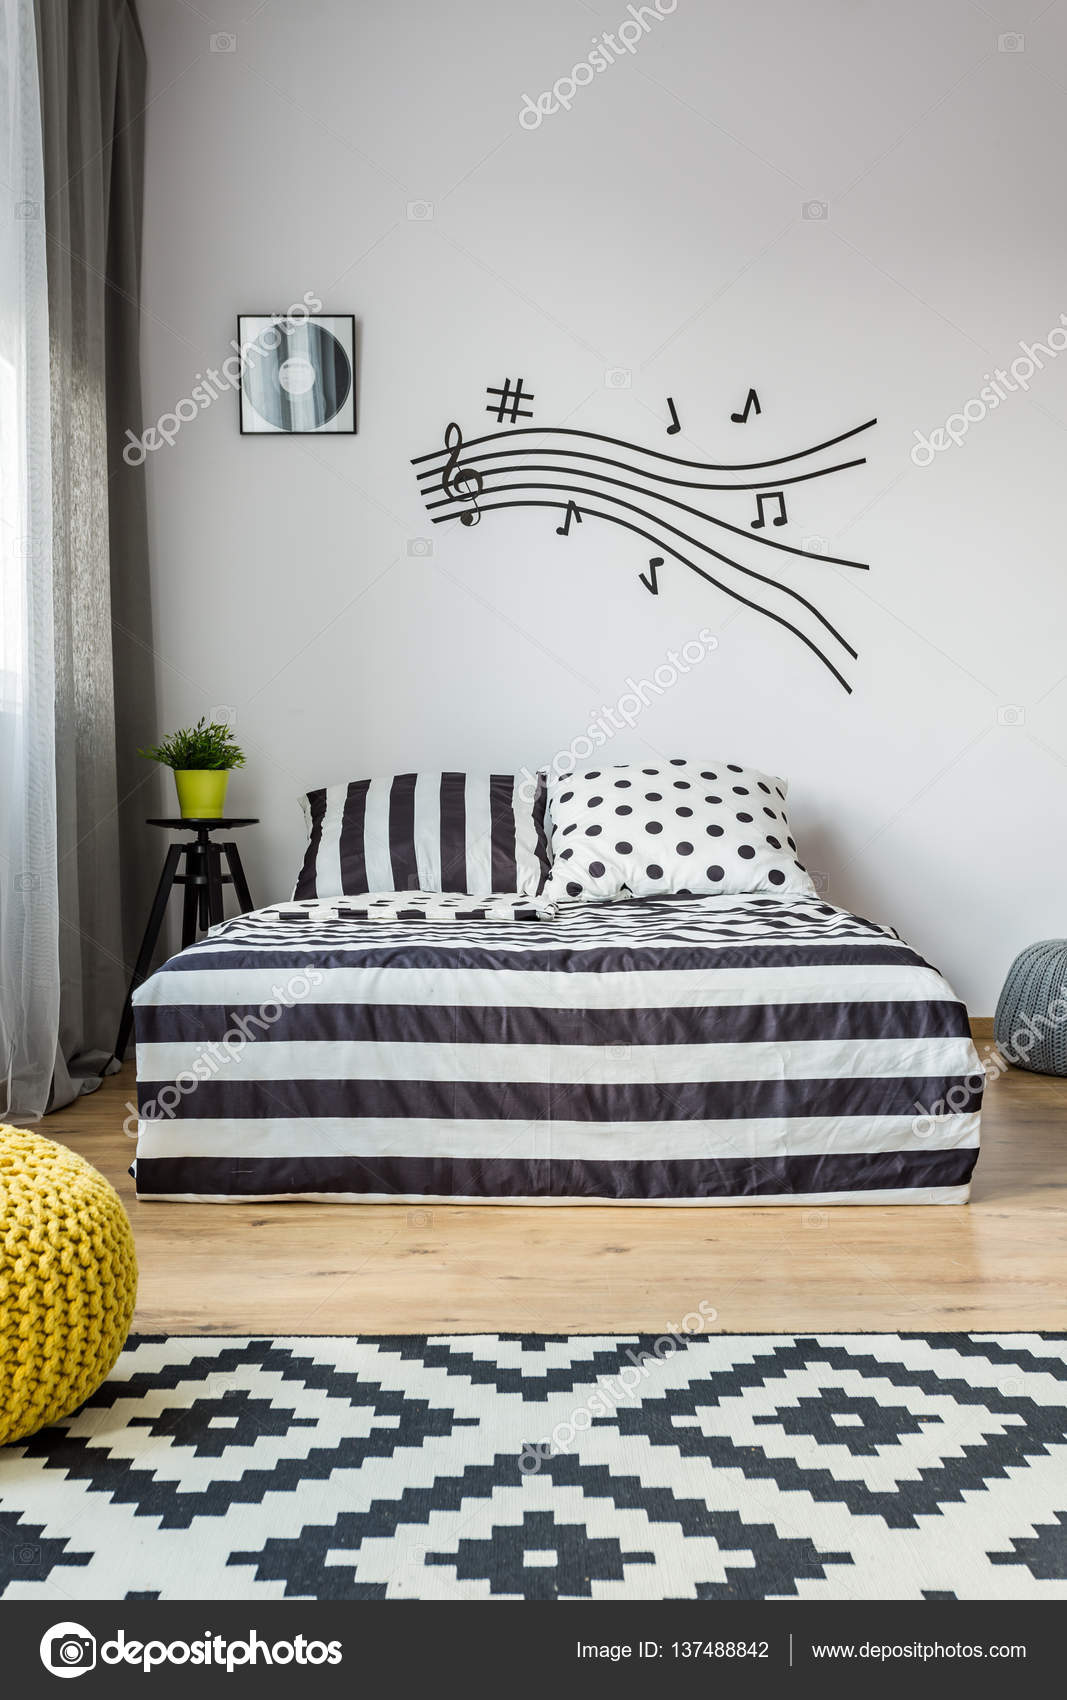 Musica nota doga in camera da letto scandi — Foto Stock ...